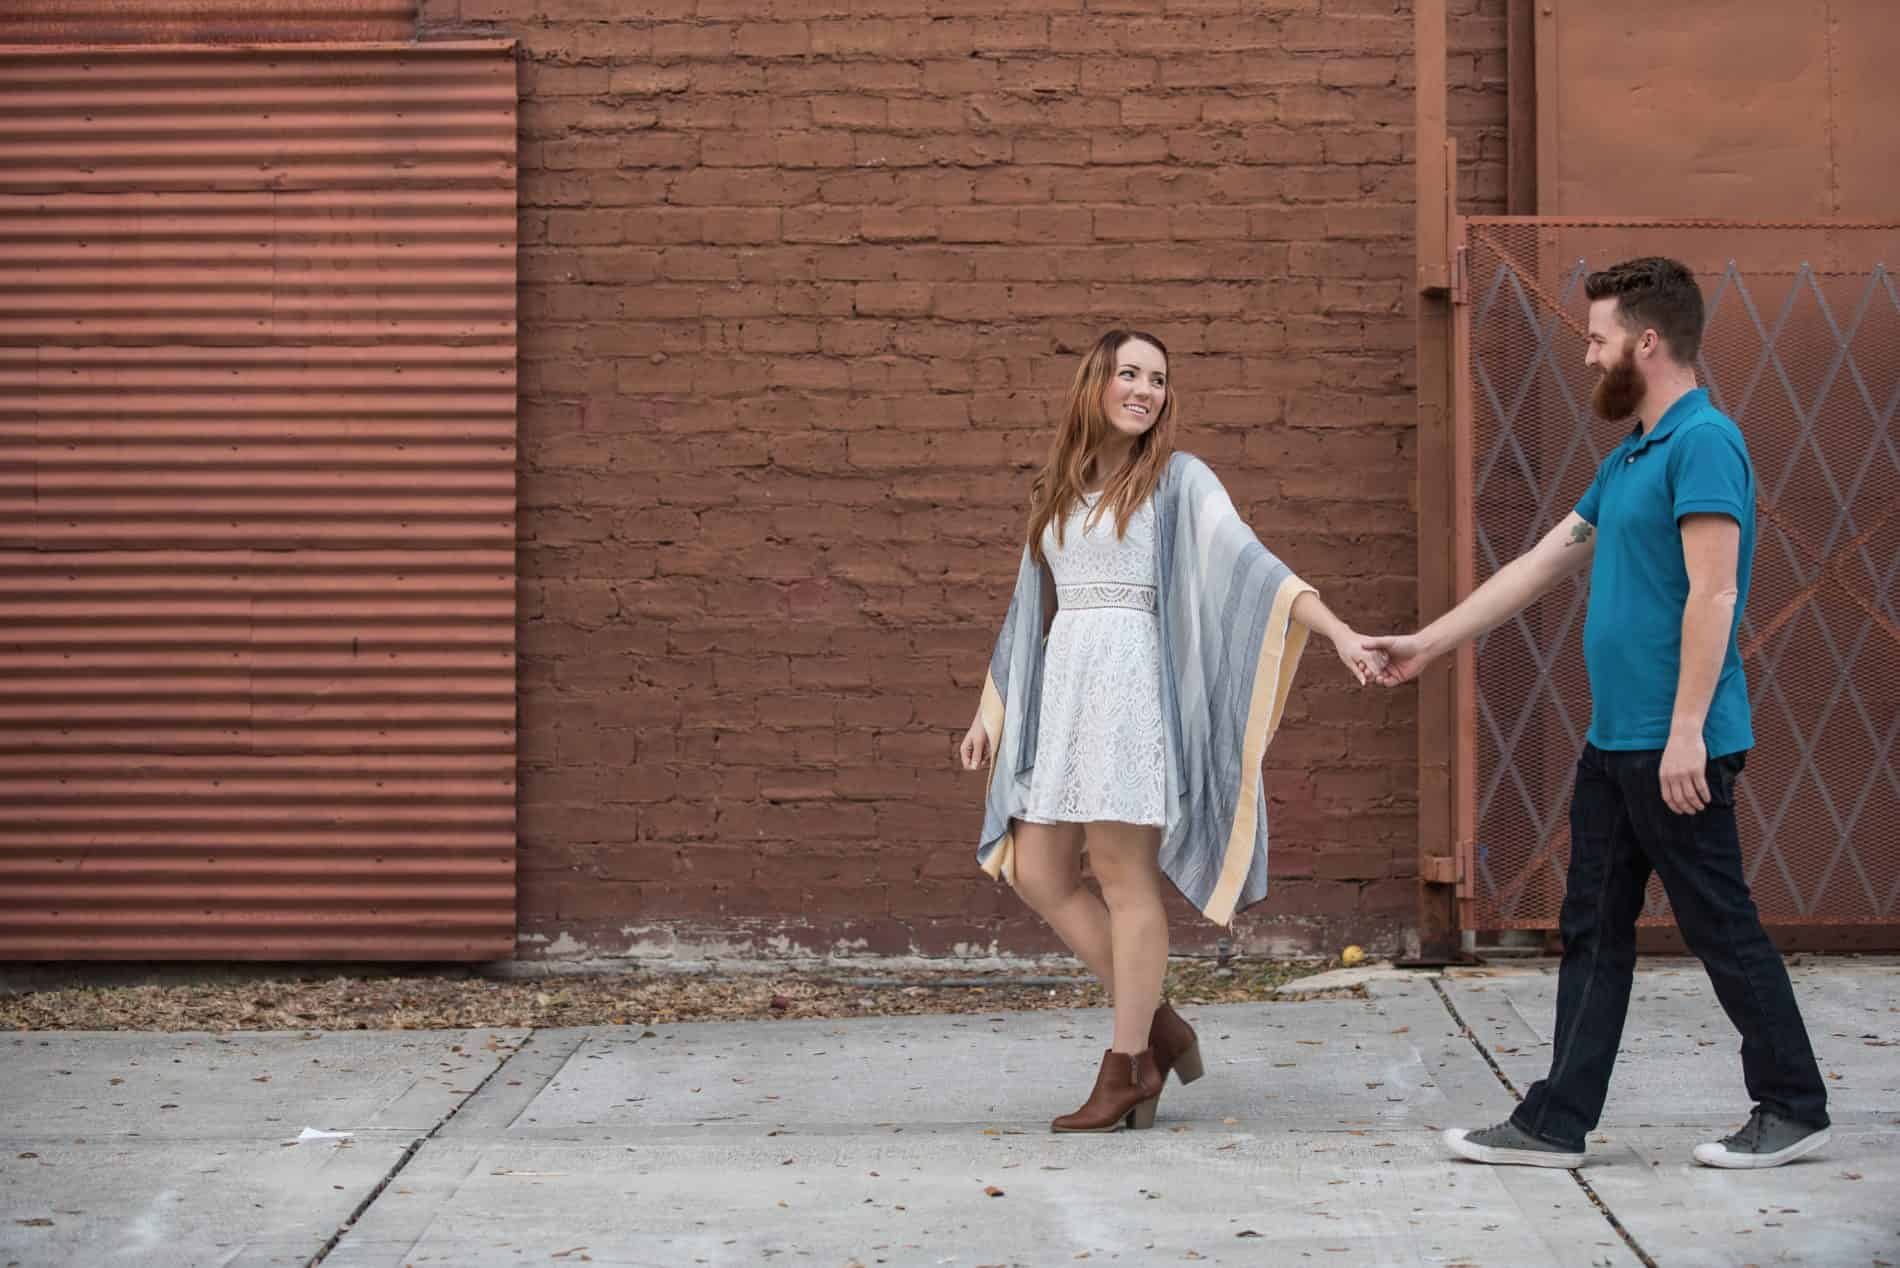 She walks her engaged partner in this engagement session